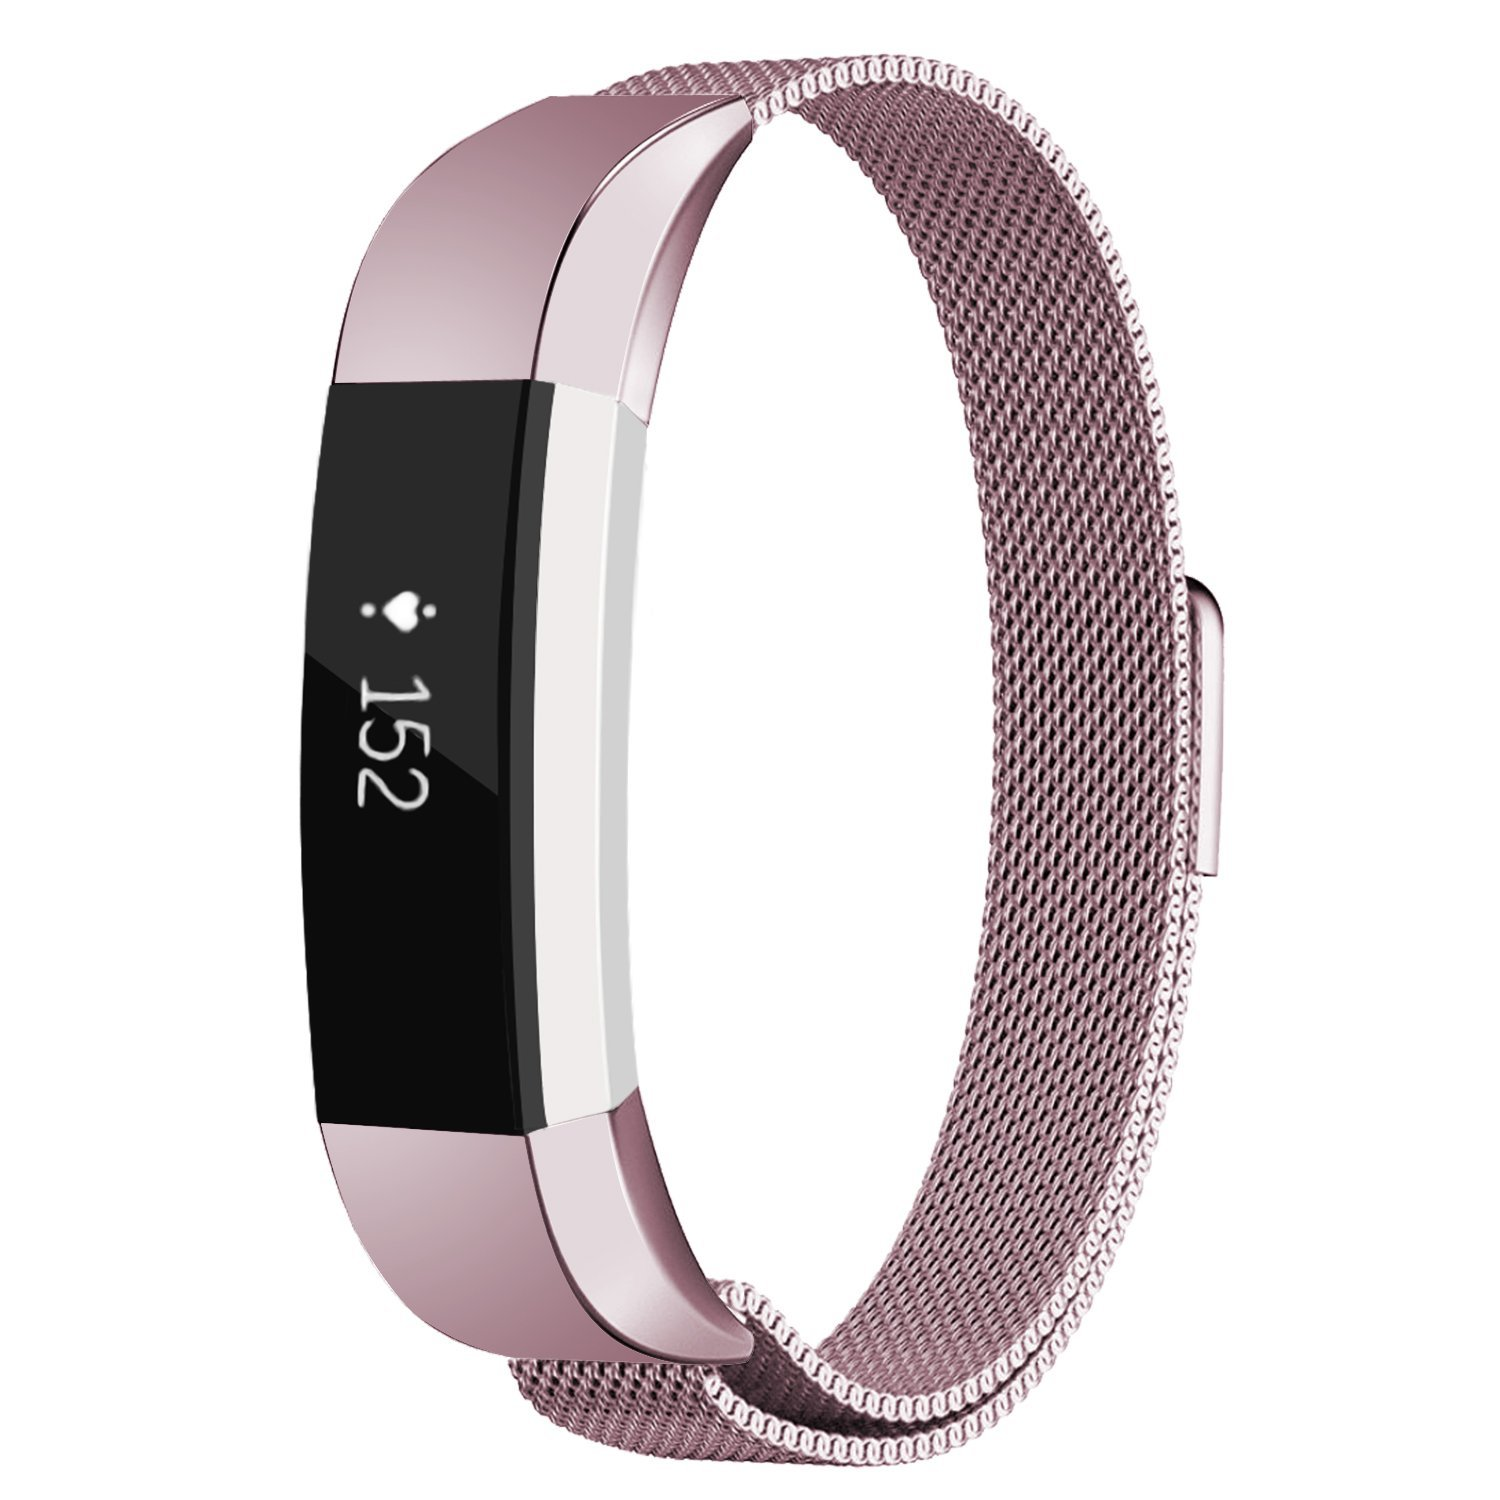 Replacement bands Metal Wristband Strap with Magnetic Closure Clasp for Fitbit Alta / Fitbit Alta HR Fitness Tracker